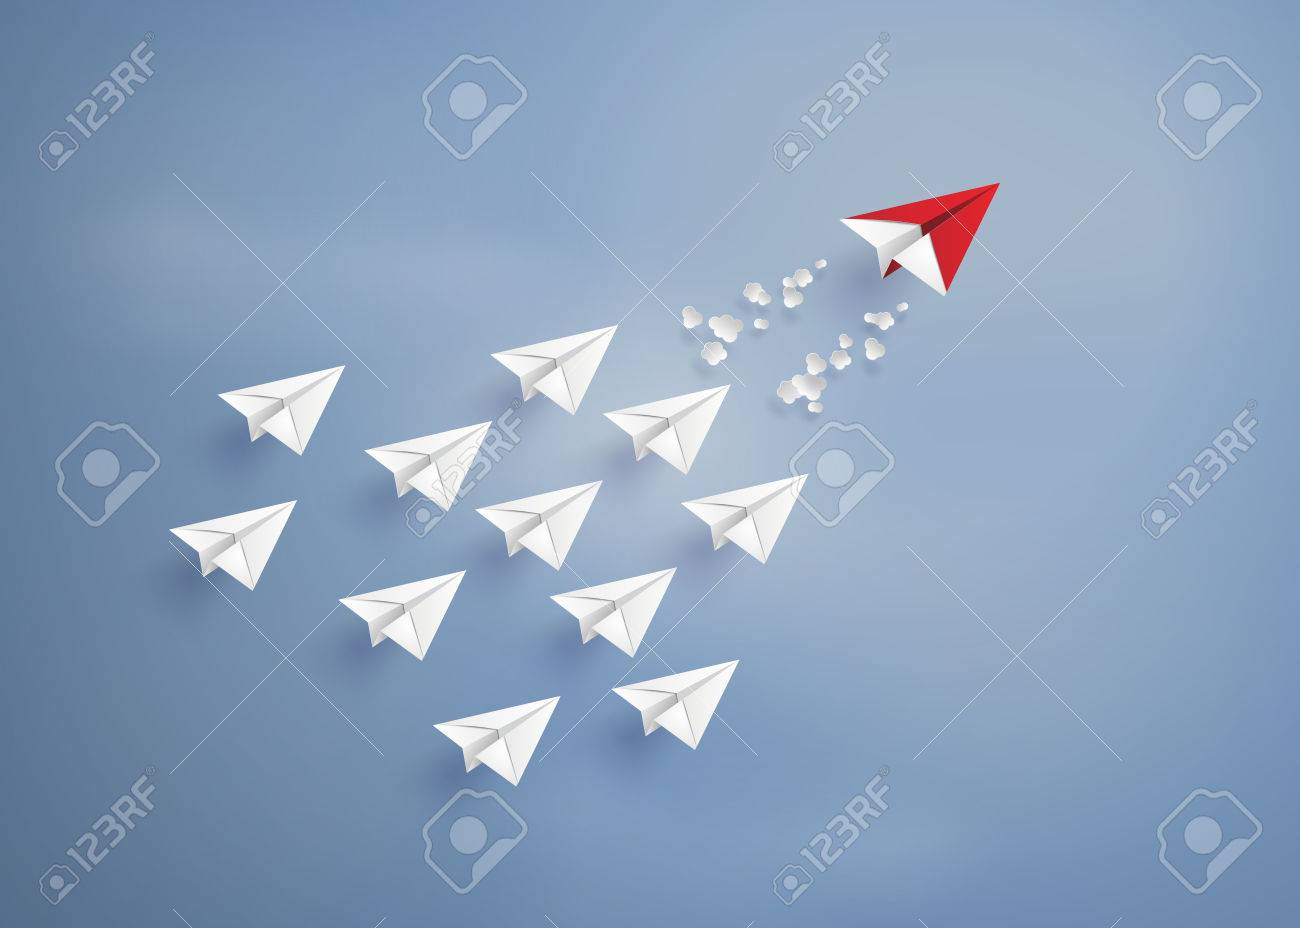 leadership concept with red and white paper plane on blue sky.paper art style. - 59843513